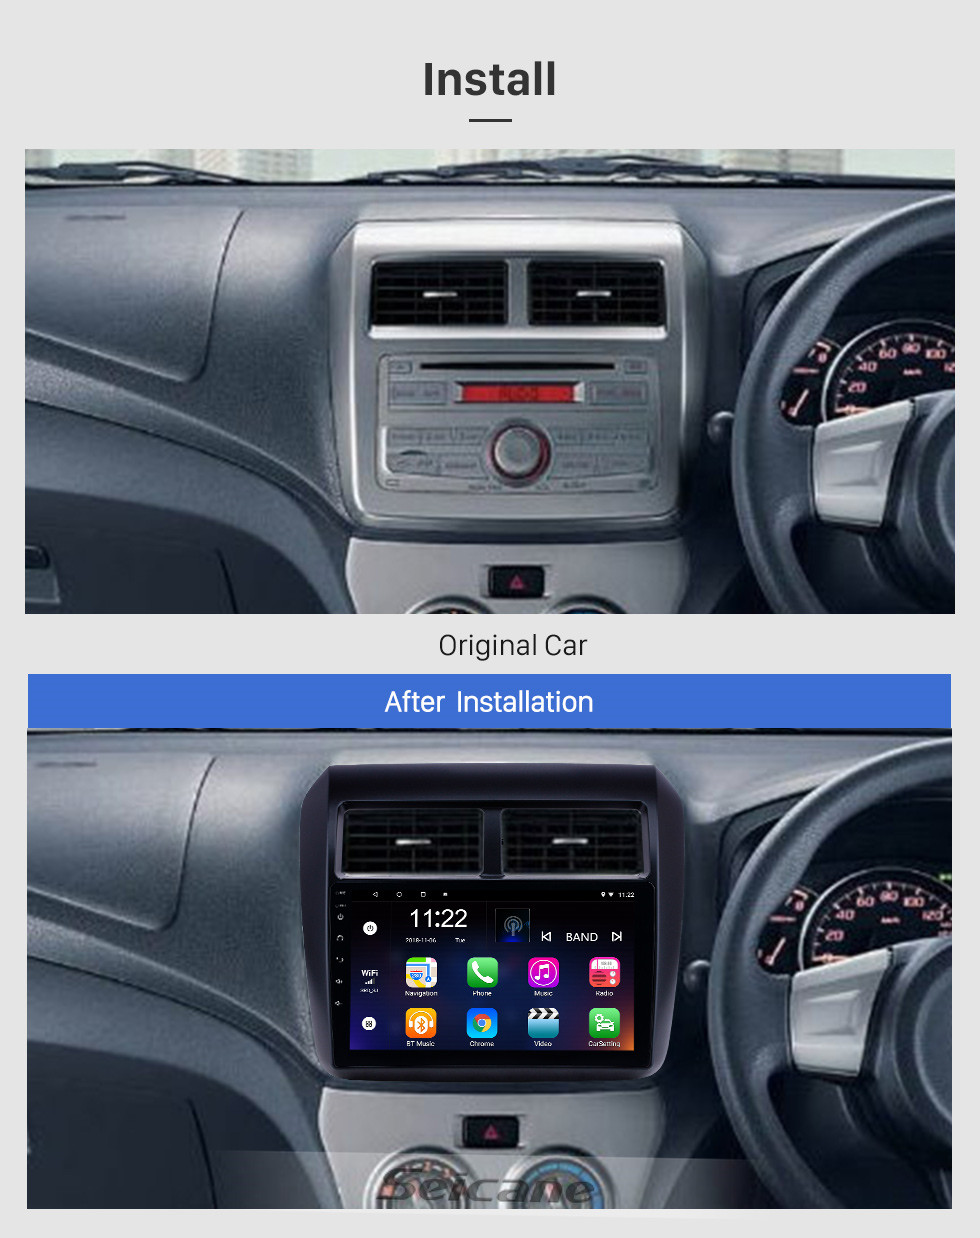 Seicane 2013-2019 Toyota AGYA/WIGO Android 10.0 Touchscreen 9 inch Head Unit Bluetooth GPS Navigation Stereo with AUX WIFI support DAB+ OBD2 DVR SWC TPMS Carplay